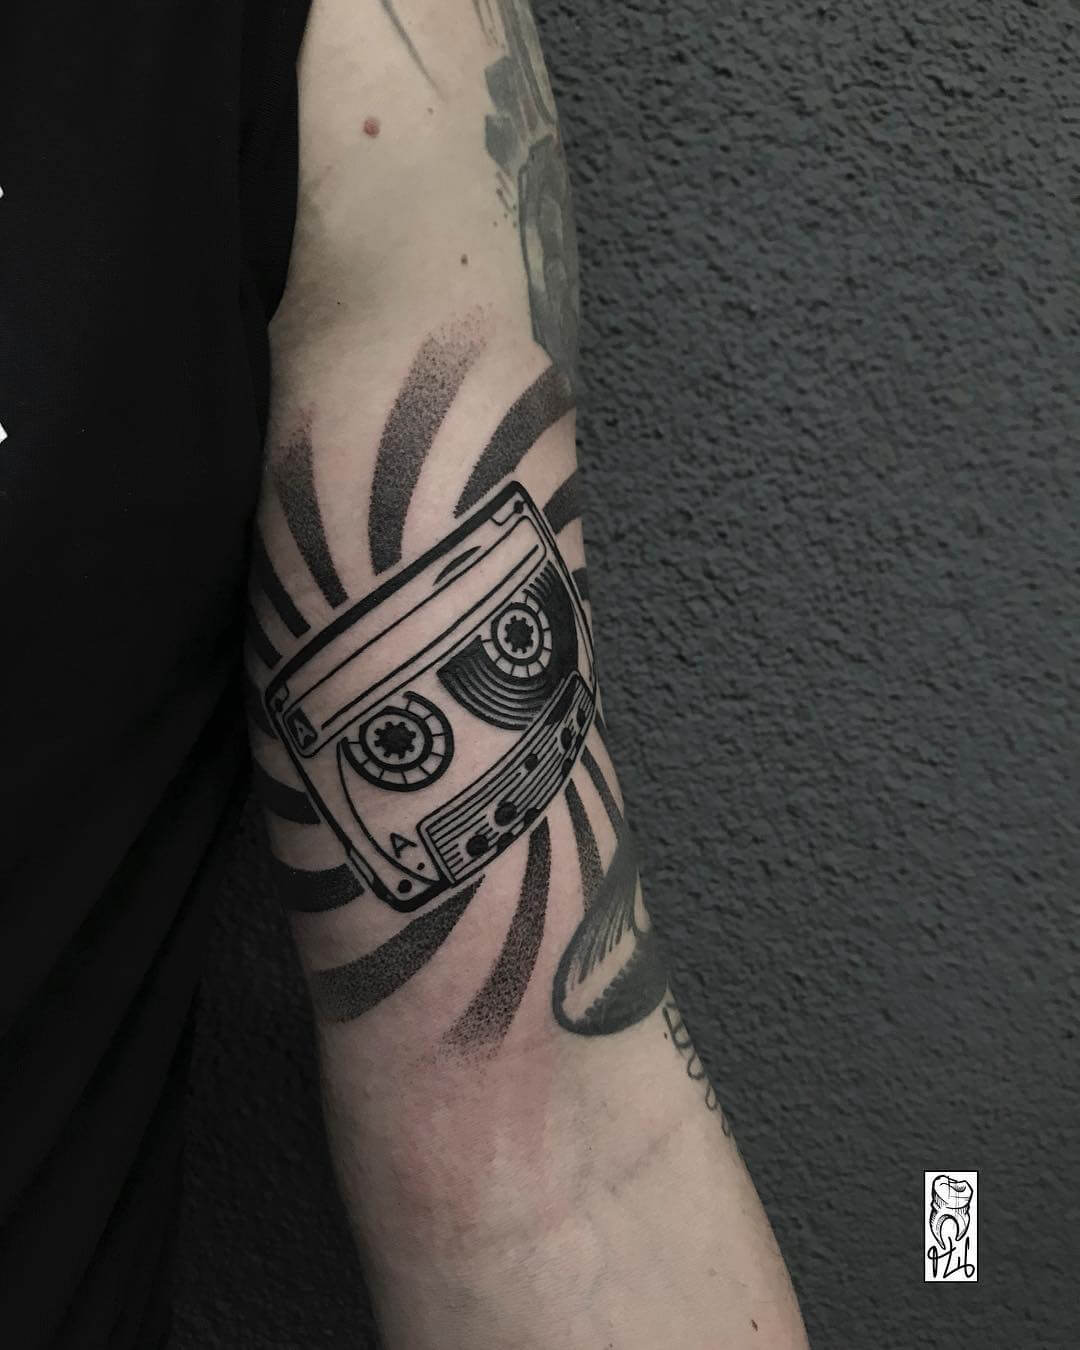 Tattoo Stil: Blackwork Tattoos